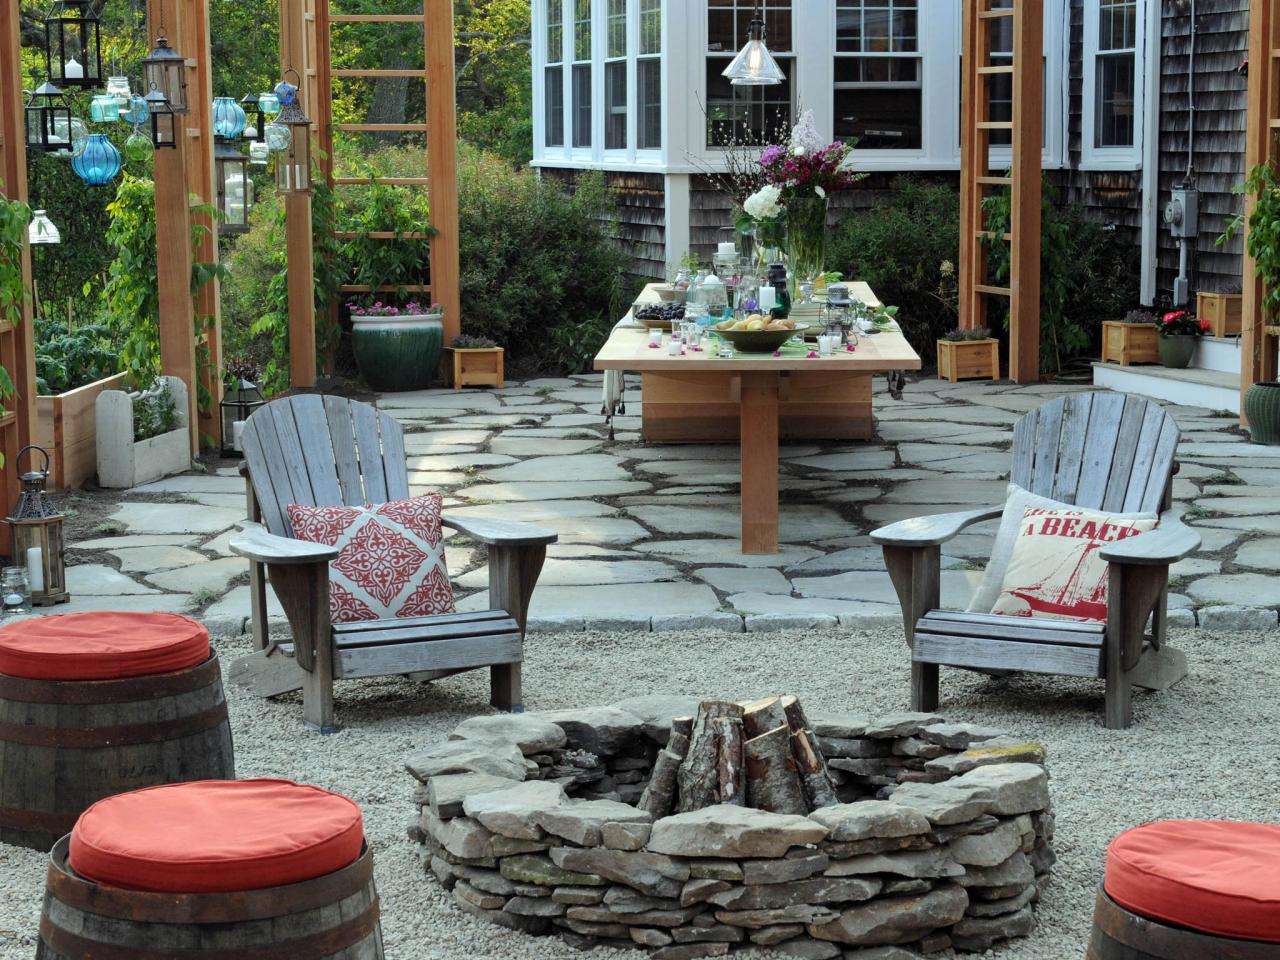 Simple Setup U003d Big Fun. Outdoor Dining Area With Fire Pit ...